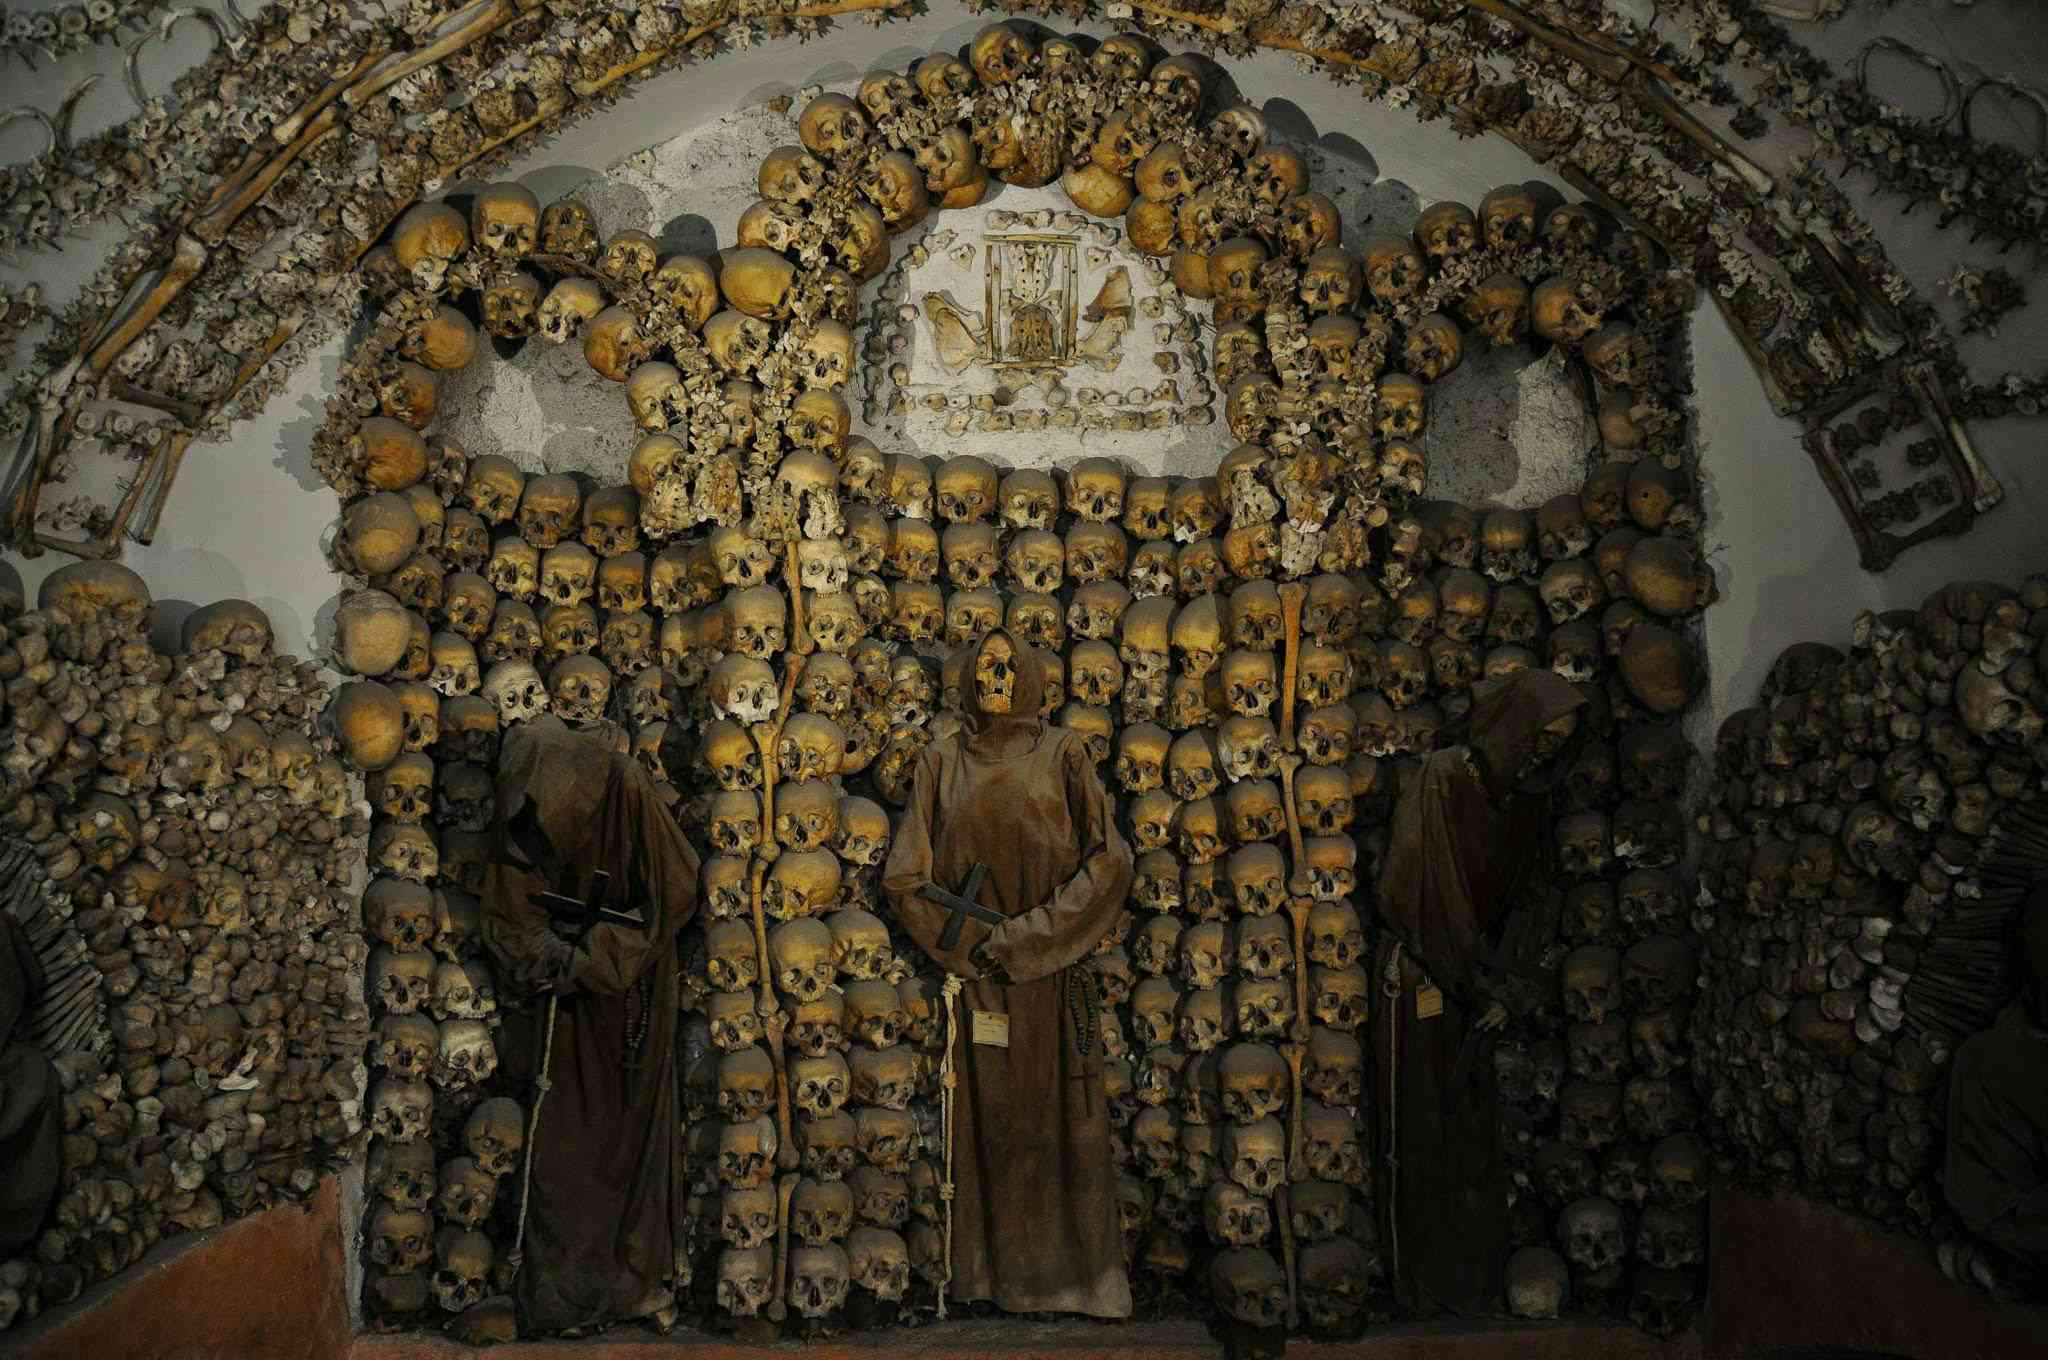 A display of skulls adorn the walls of the Capuchin Crypt in Rome